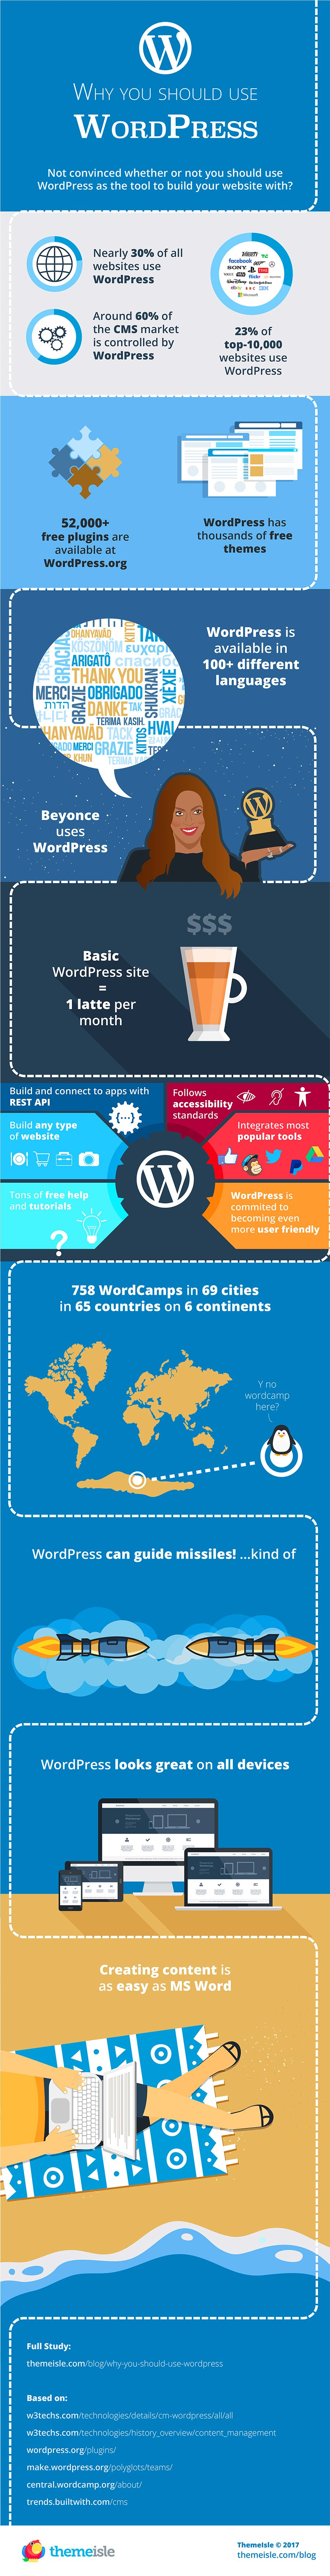 18 Reasons Why You Should Use WordPress for Your Business Website [Infographic] | Social Media Today